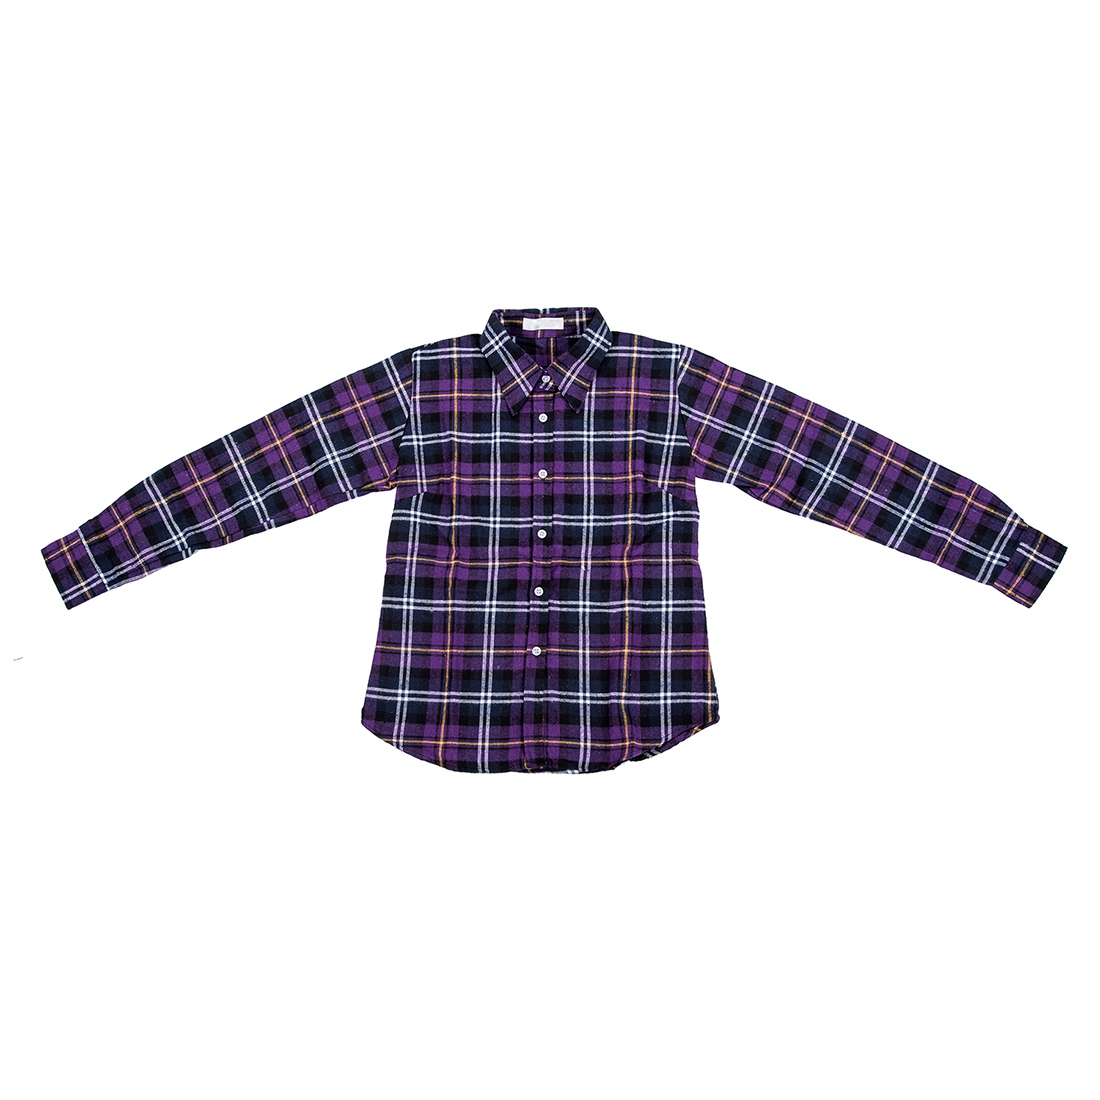 Womens shirt flannel shirts tops blouse purple white l shh2 for White and black flannel shirt womens